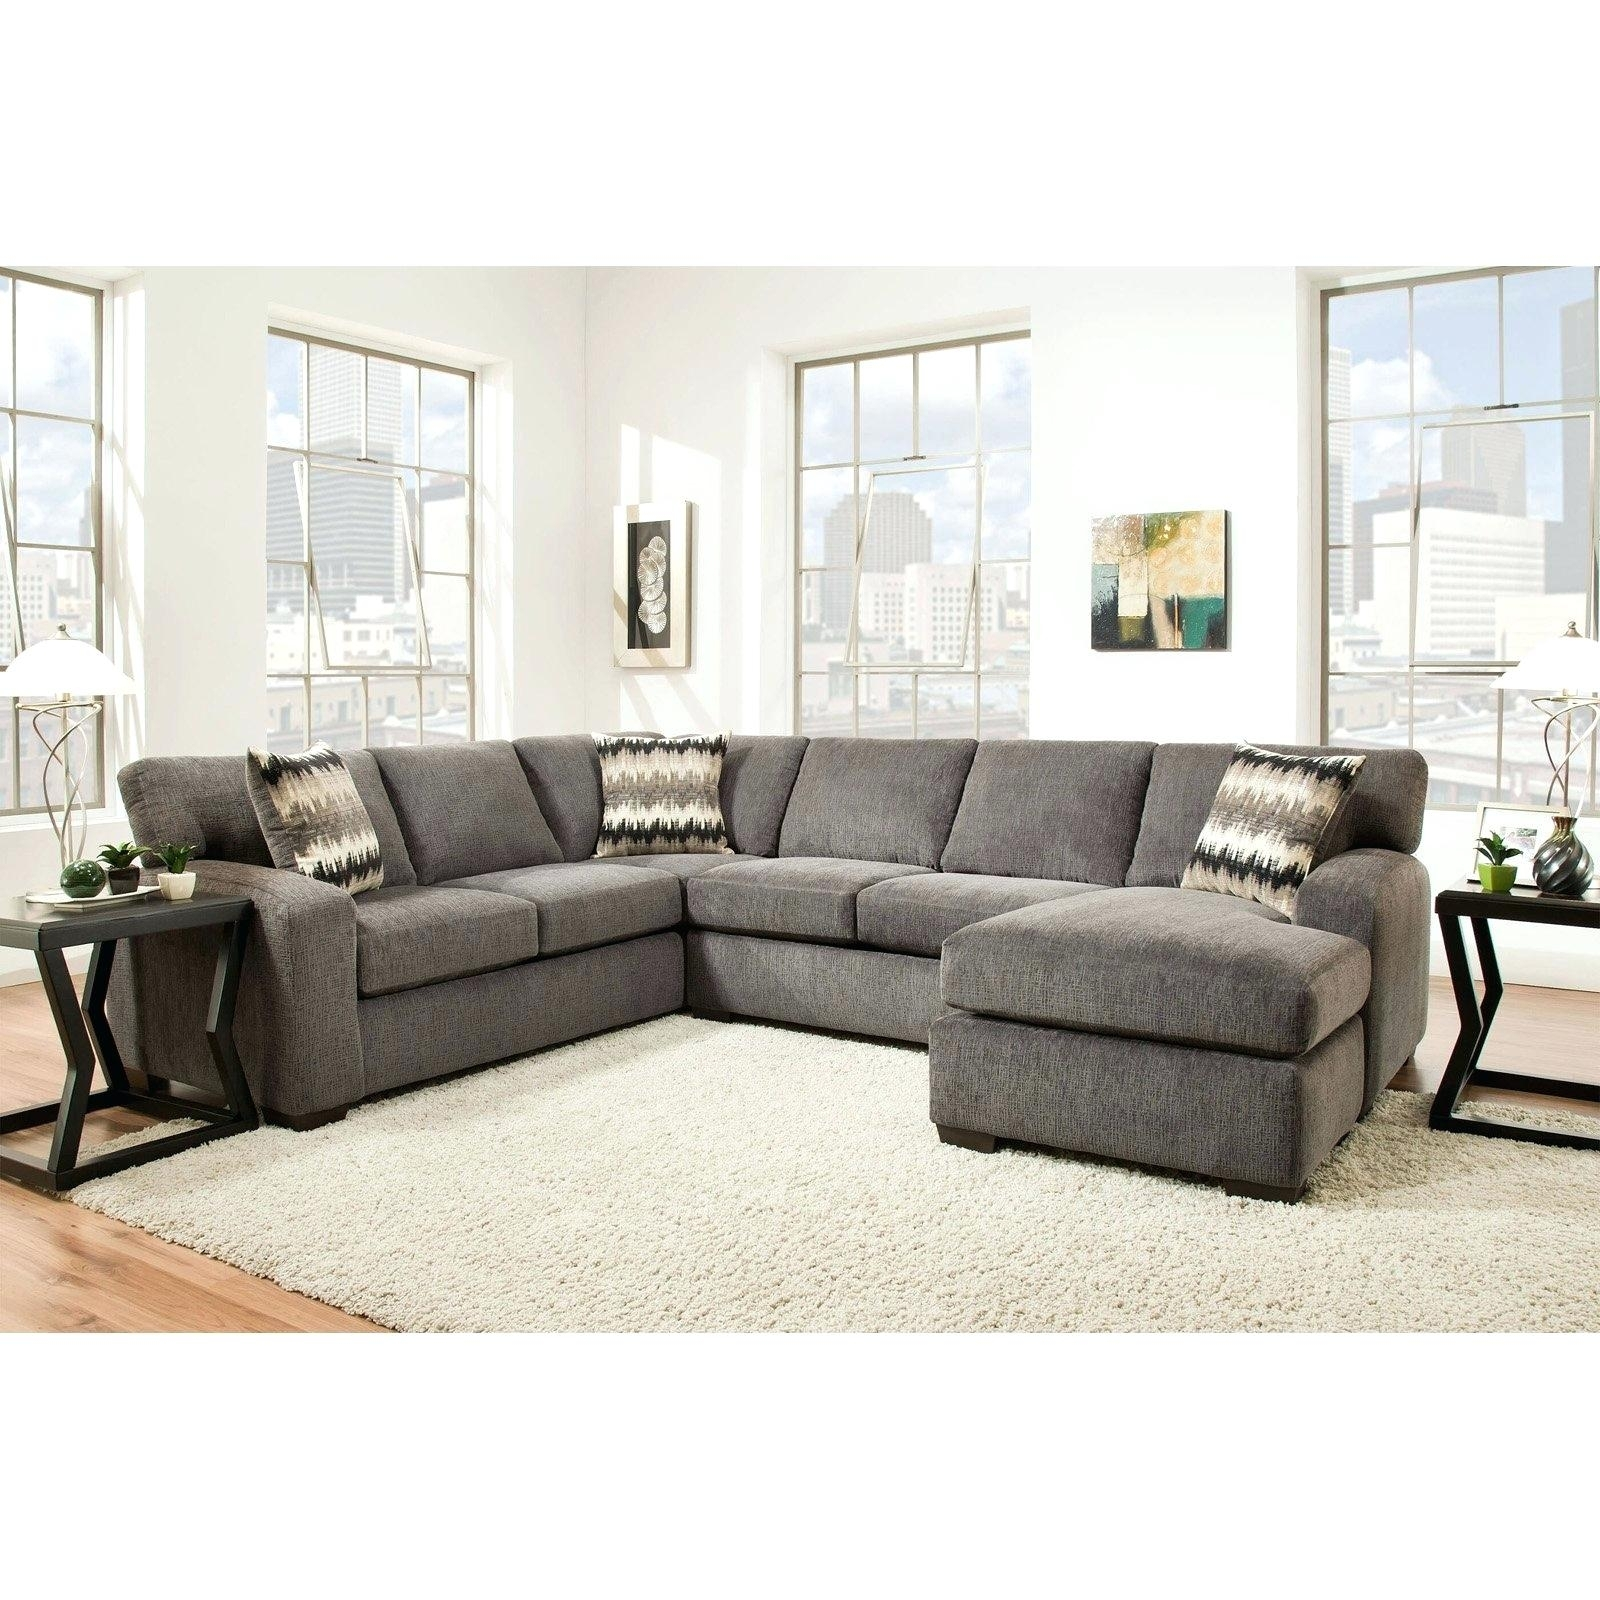 Inspirational Pictures Of Sectional Couches For Denali Light Grey 6 Inside Denali Light Grey 6 Piece Reclining Sectionals With 2 Power Headrests (Image 15 of 25)